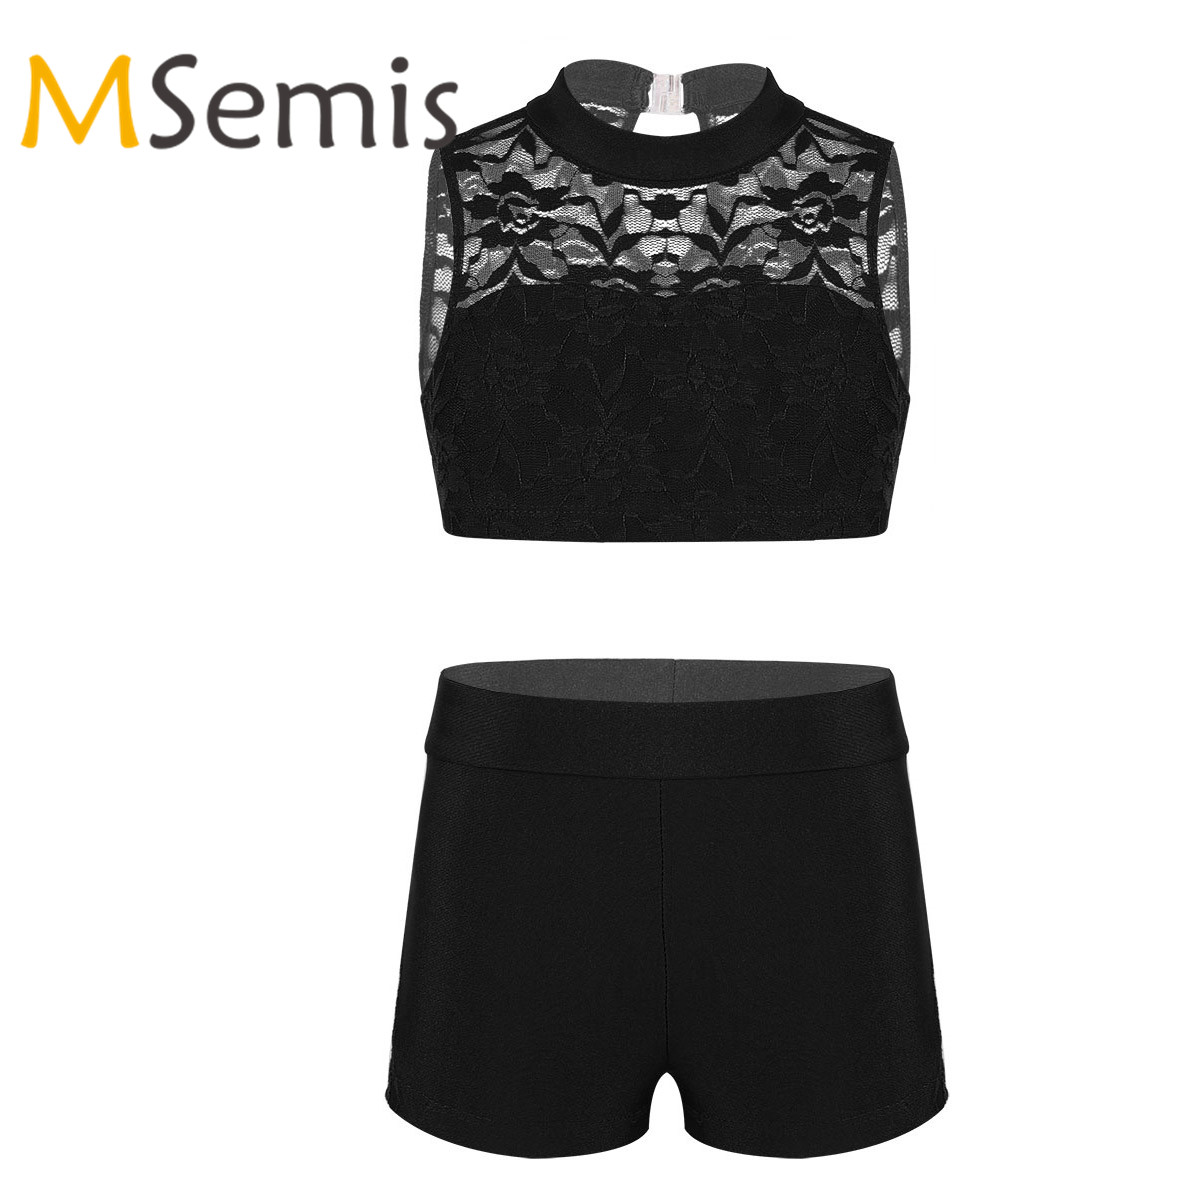 Kids Girls Gymnastics Swimsuit For Dancing Two Pieces Swimwear Crop Top With Shorts Outfit Children's Gymnastics Bathing Suit